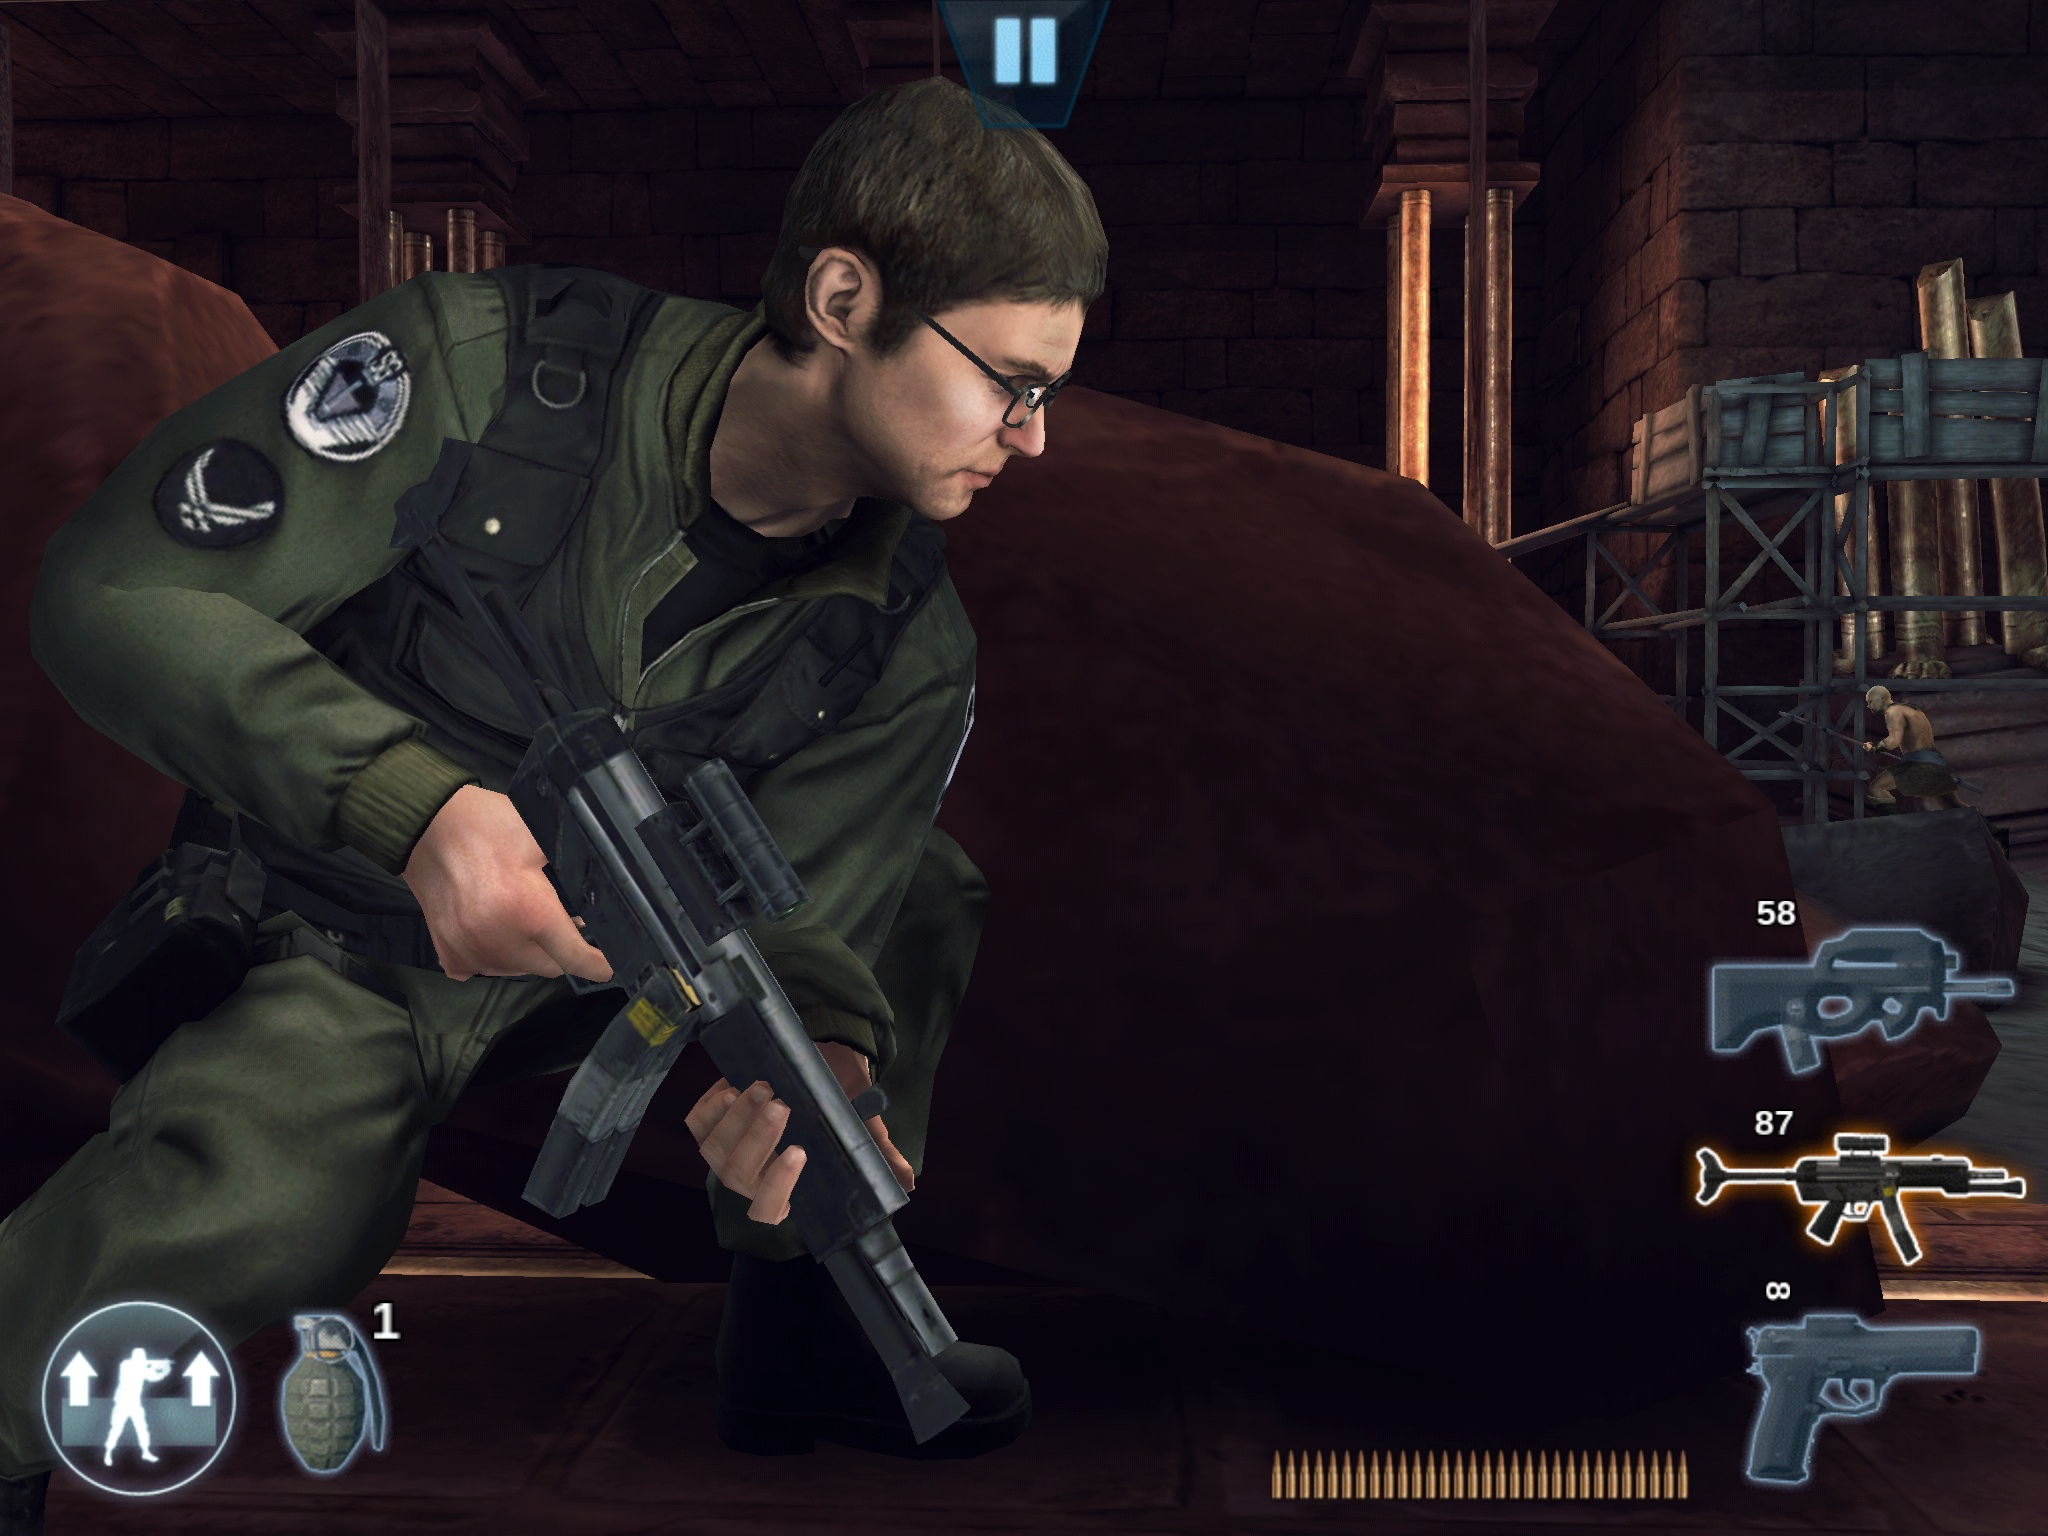 stargate sg-1 unleashed ep 2 download android